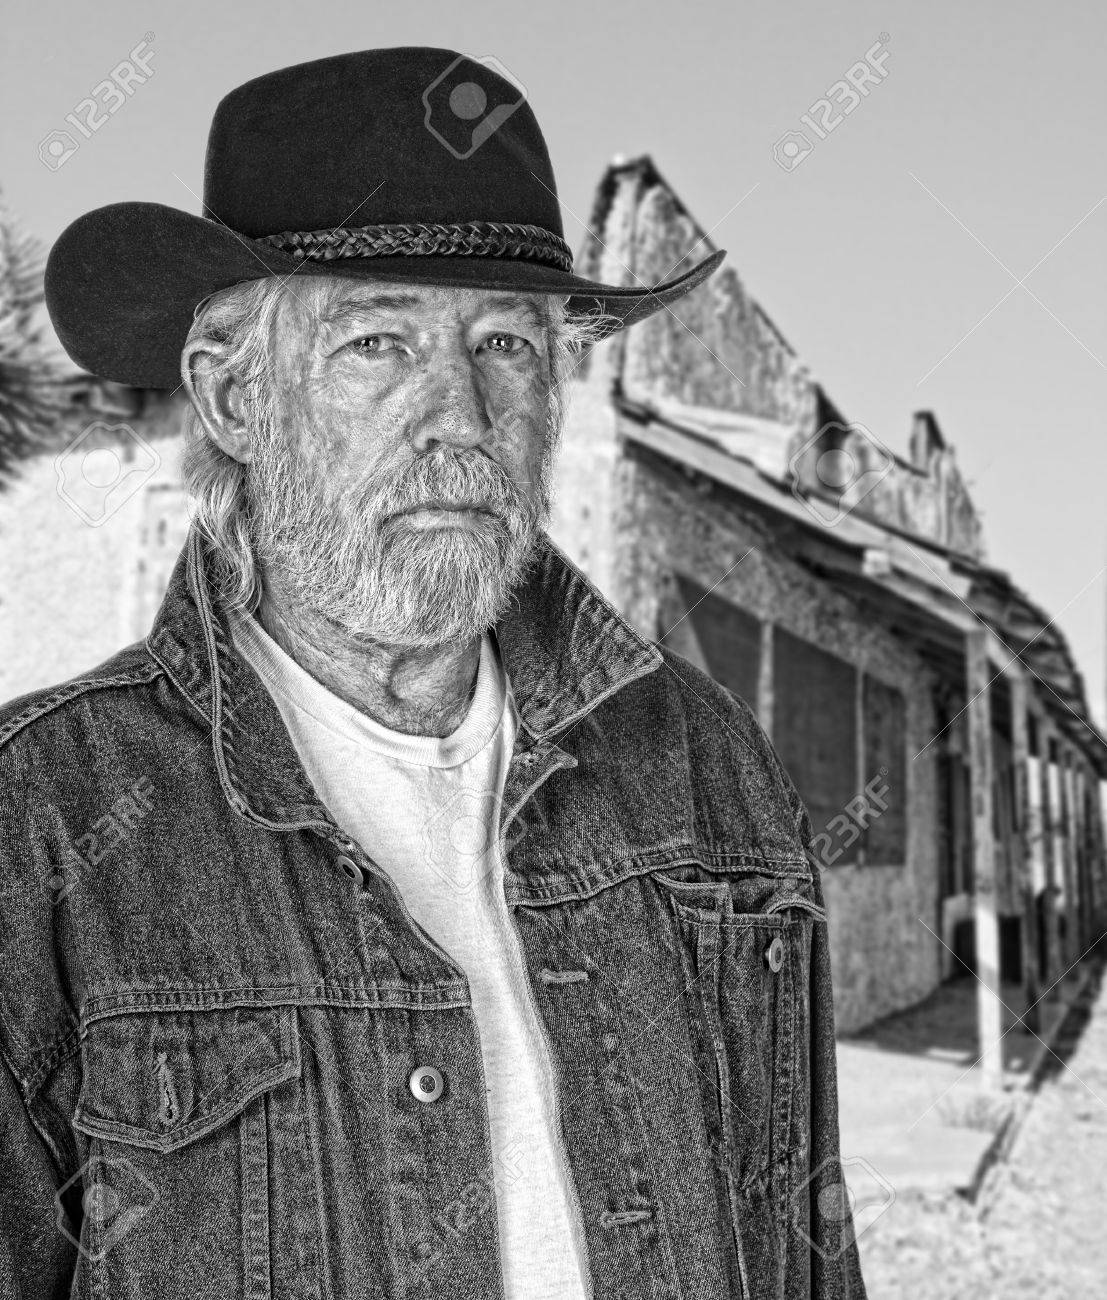 Monochrome Of A Tough Old Cowboy With A Ghost Town In The 1107x1300